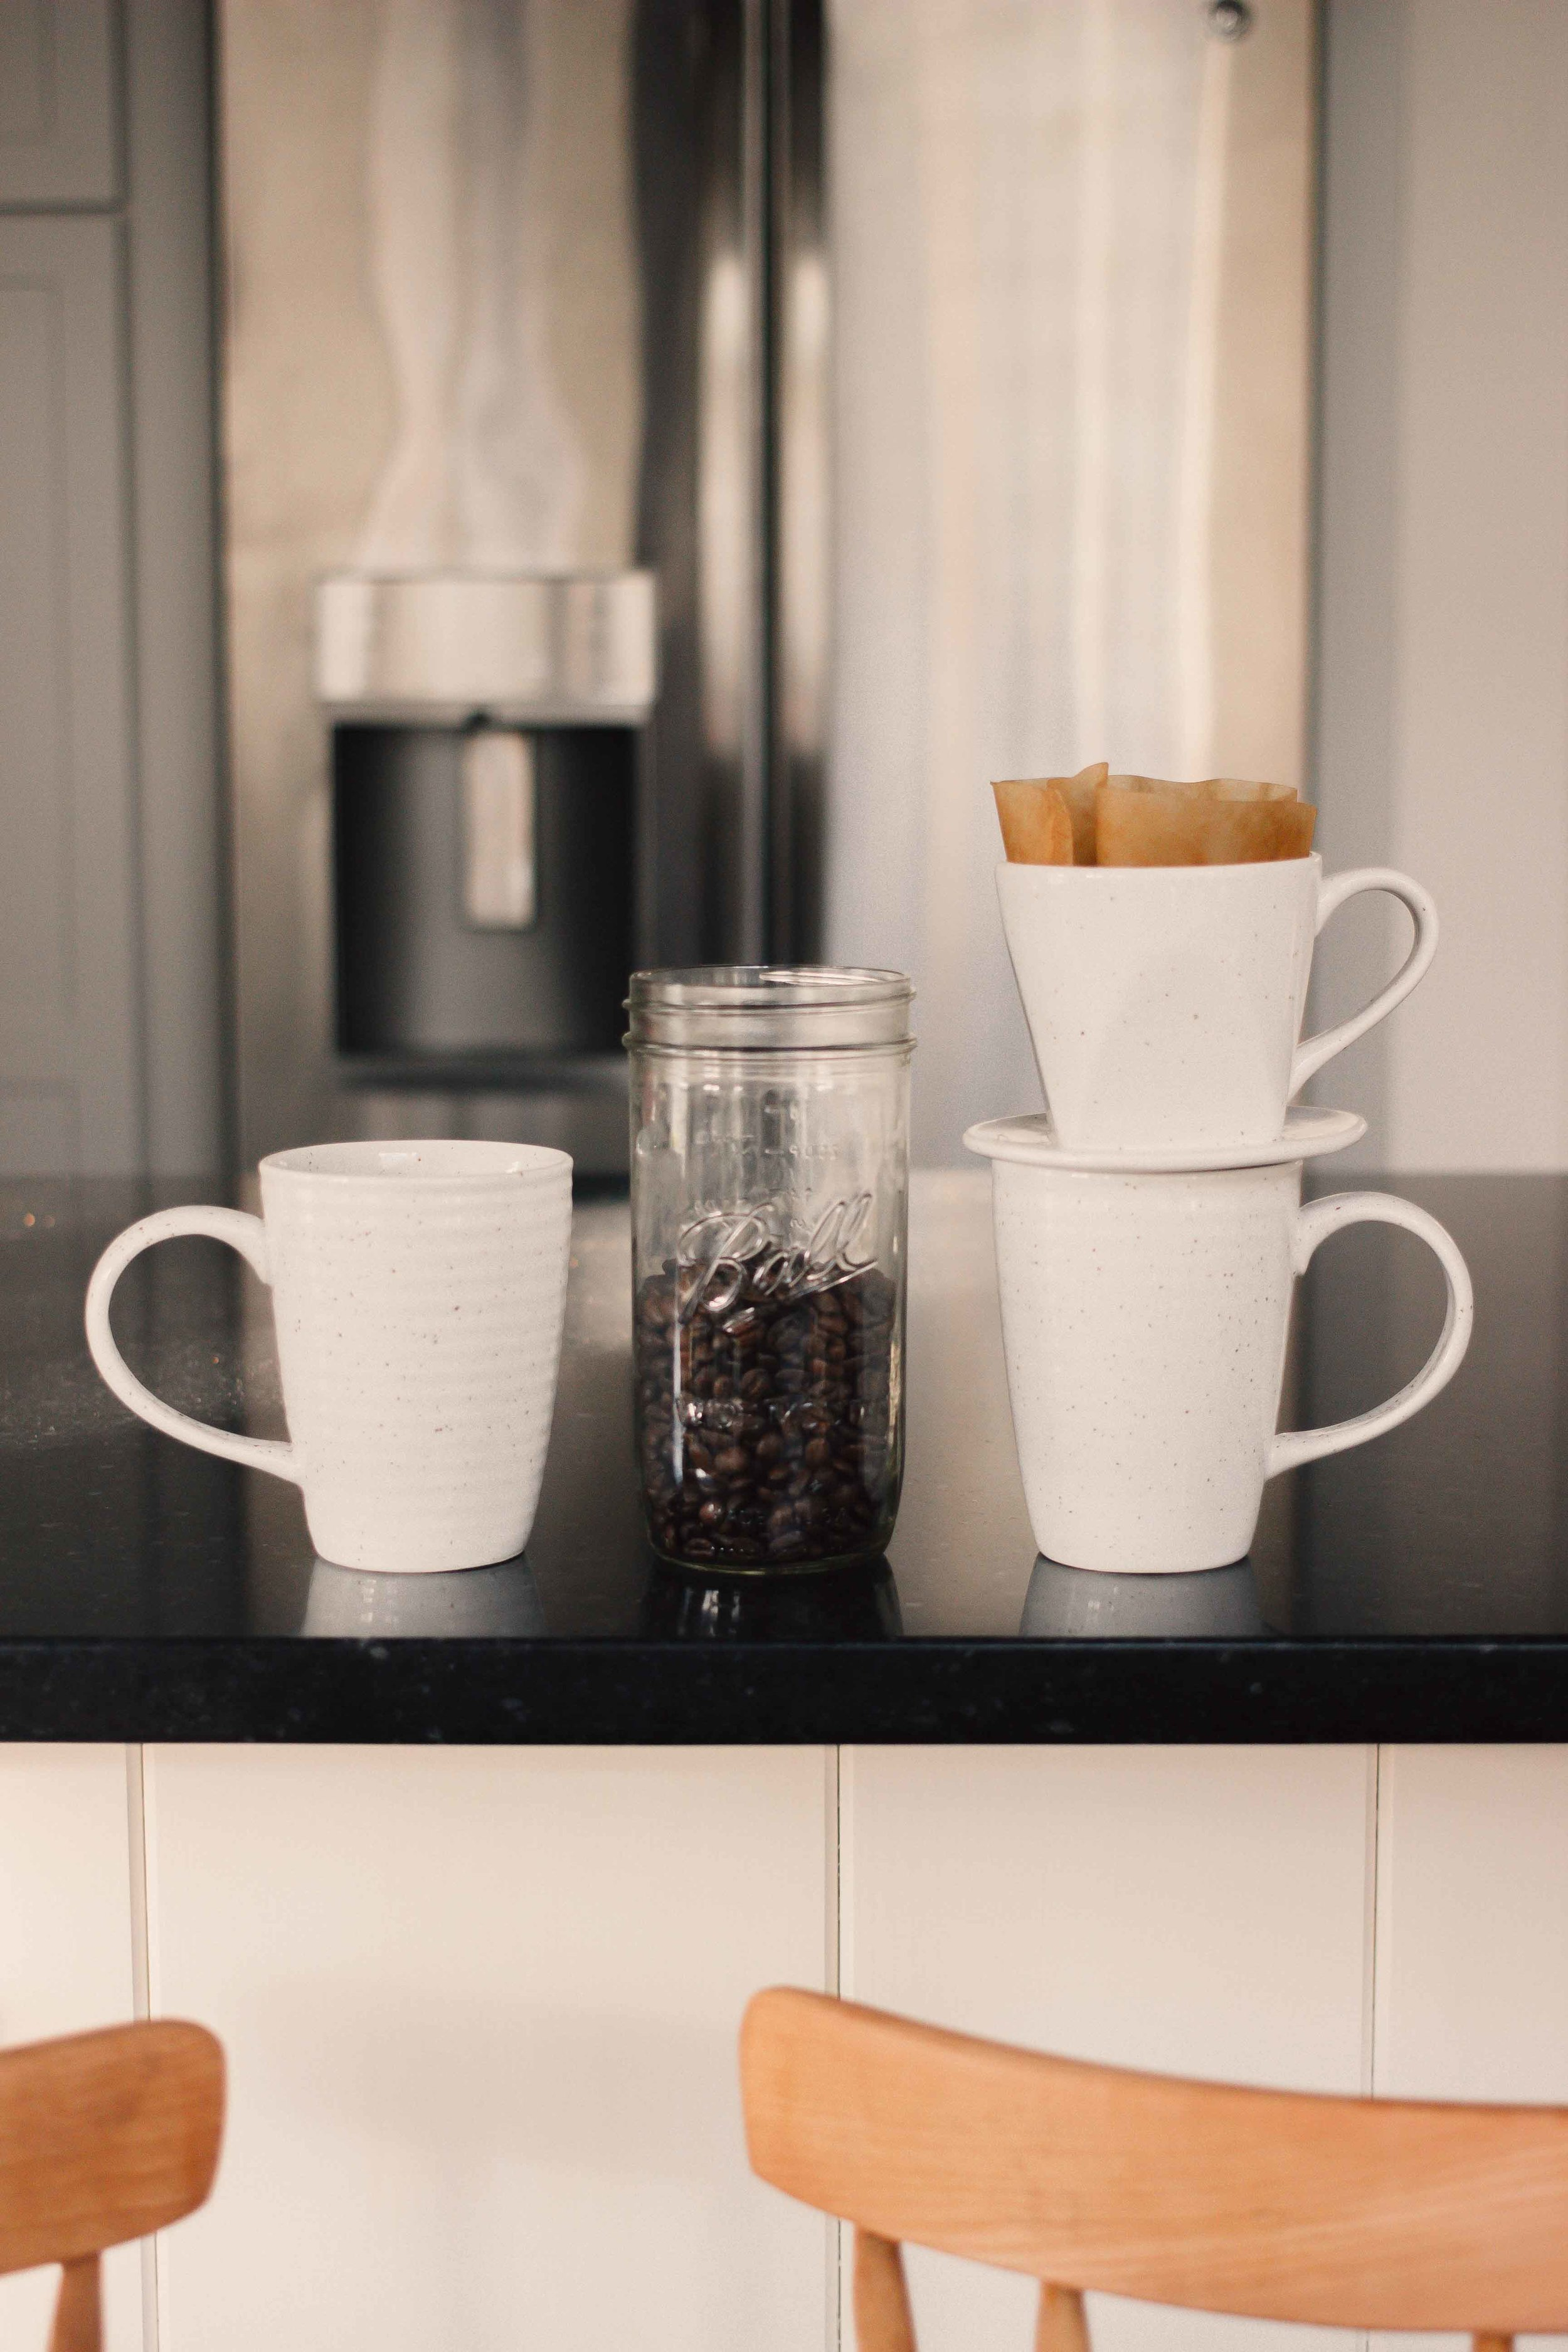 Pictured above is the  fair-trade ceramic pour-over coffee maker  and cup by Ten Thousand Villages #partner